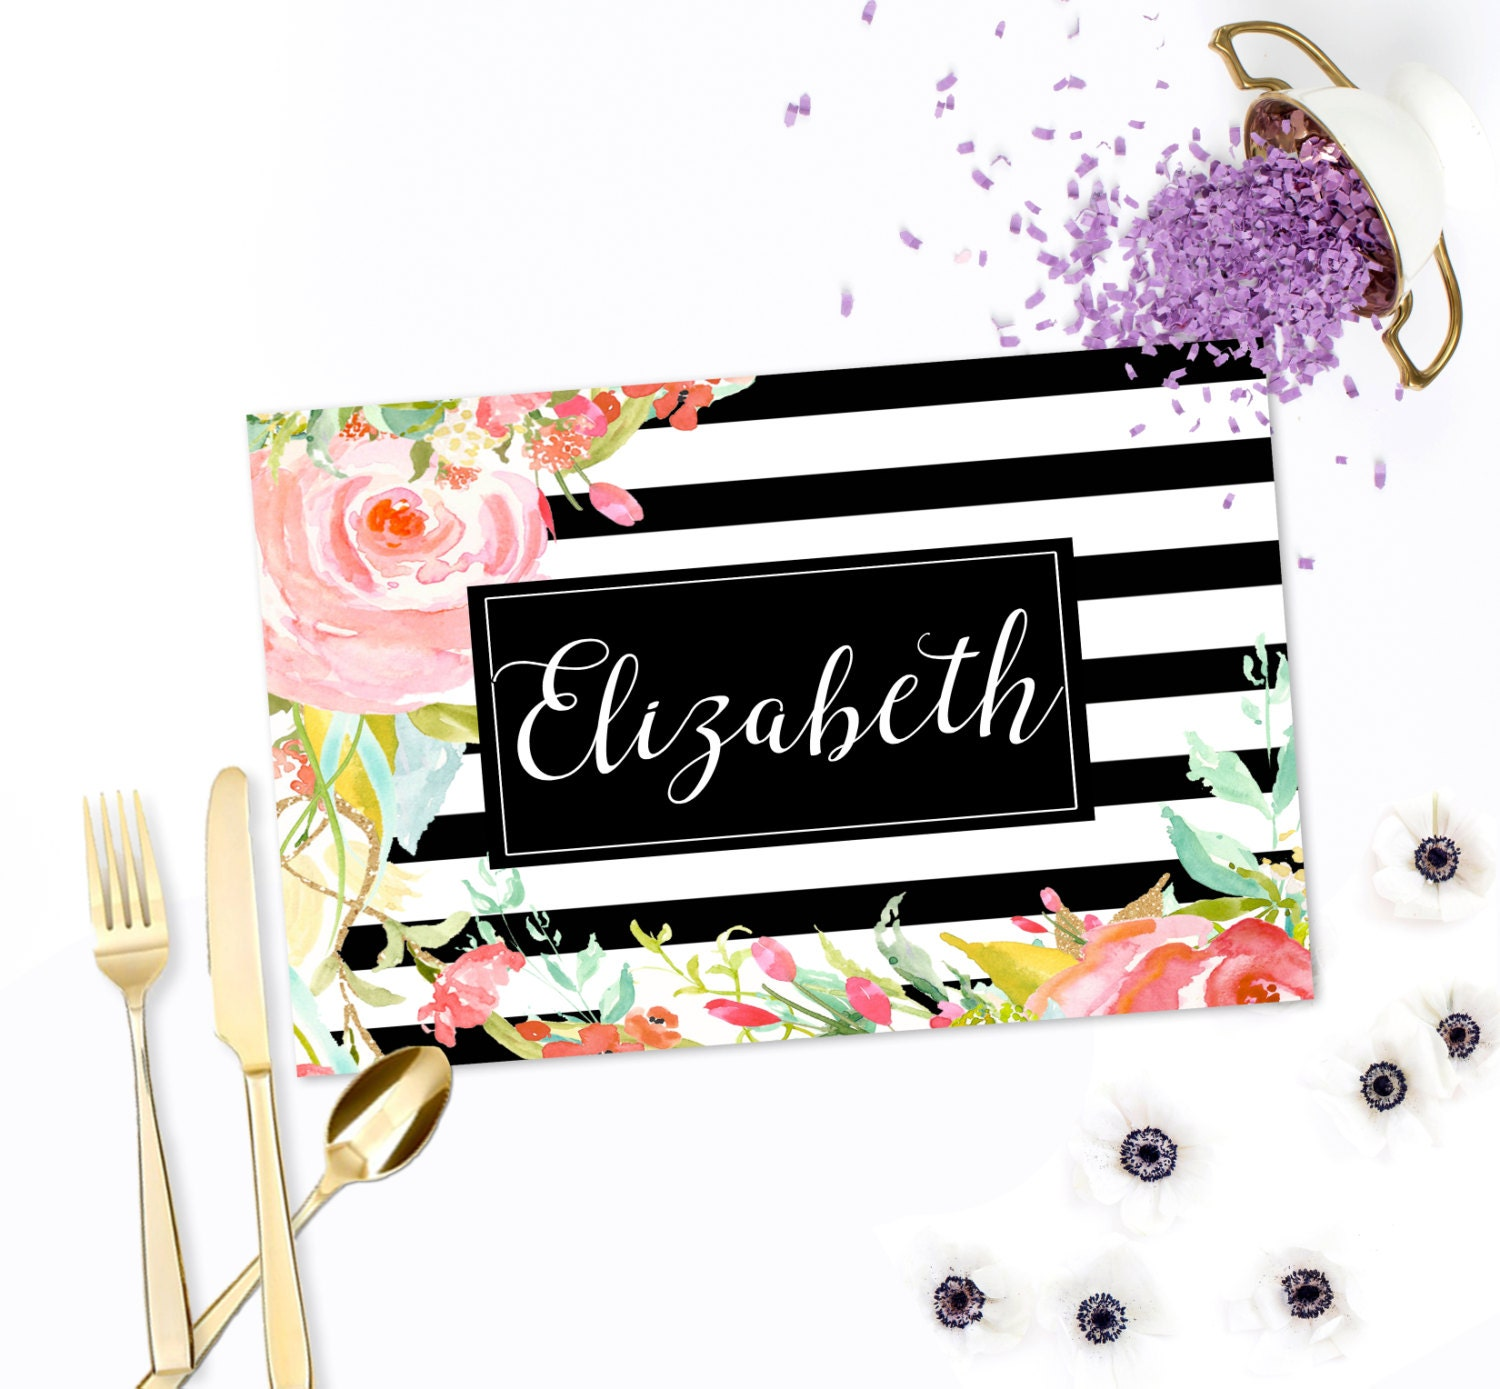 personalized paper placemats Shop for custom placemats on etsy personalized paper placemats - olive garland border, custom placemats, personalized printed placemats, hostess gift.